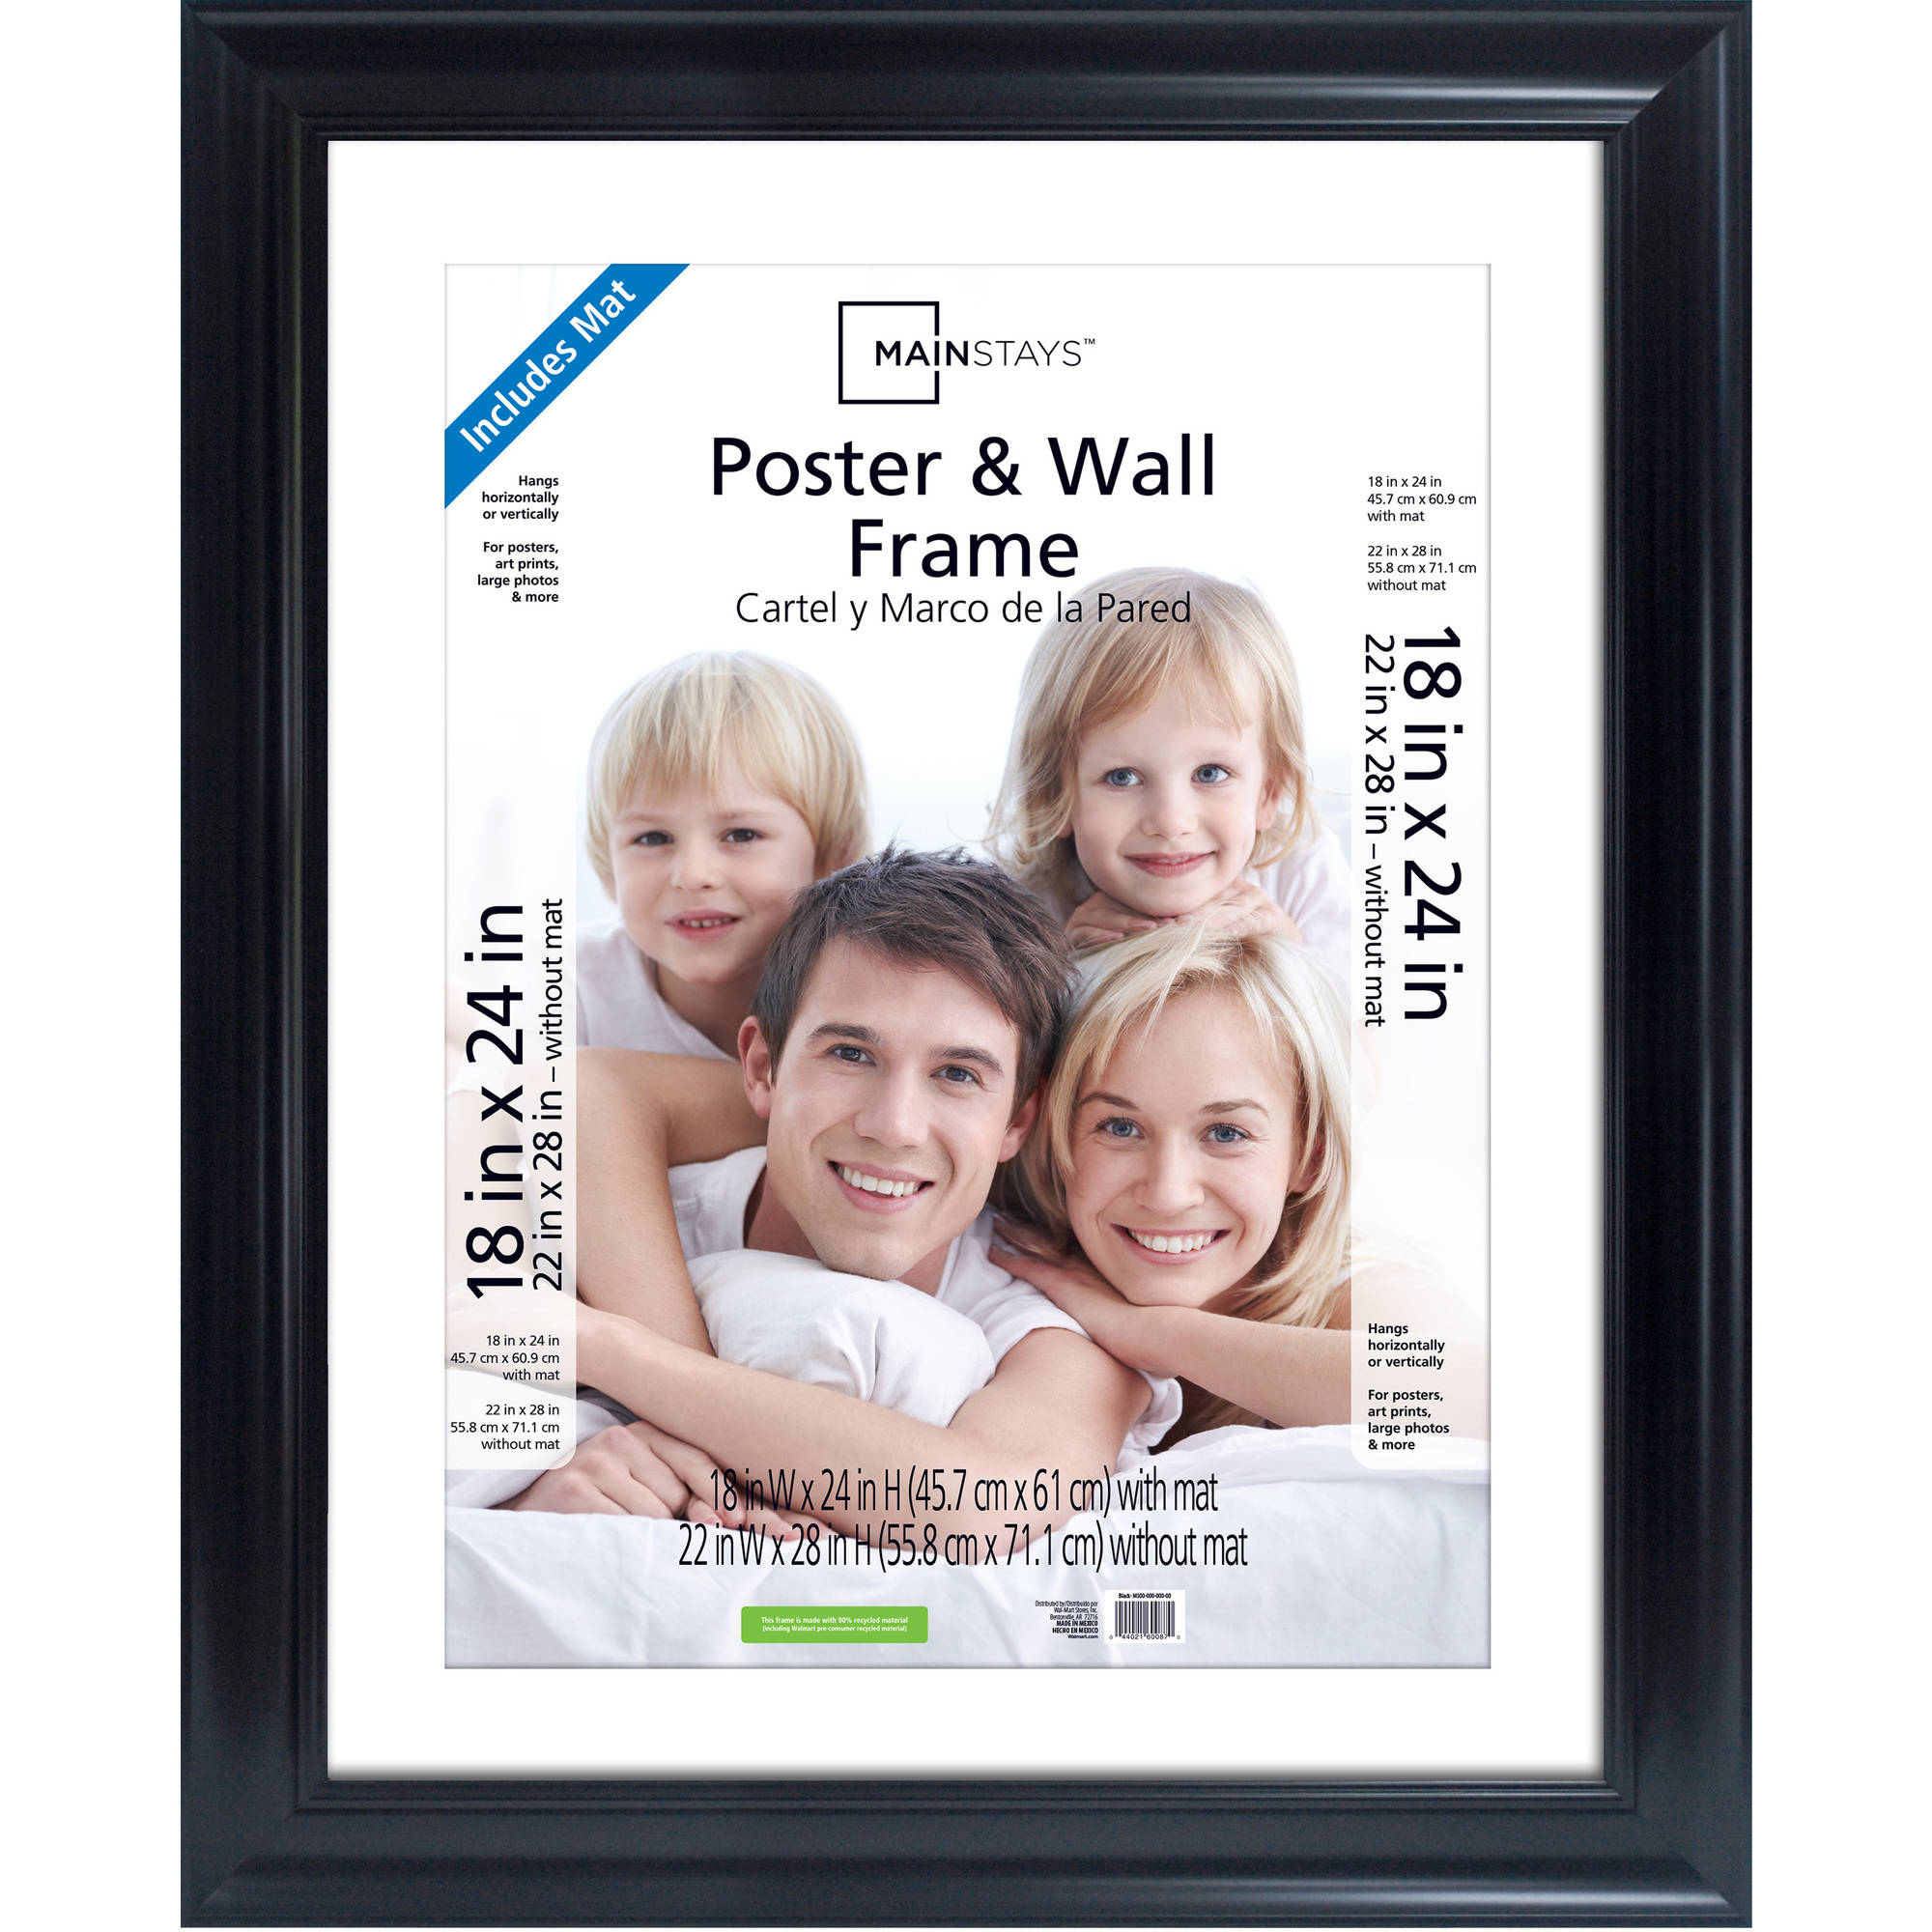 Mainstays 22x28 Matted to 18x24 Wide Black Poster and Picture Frame